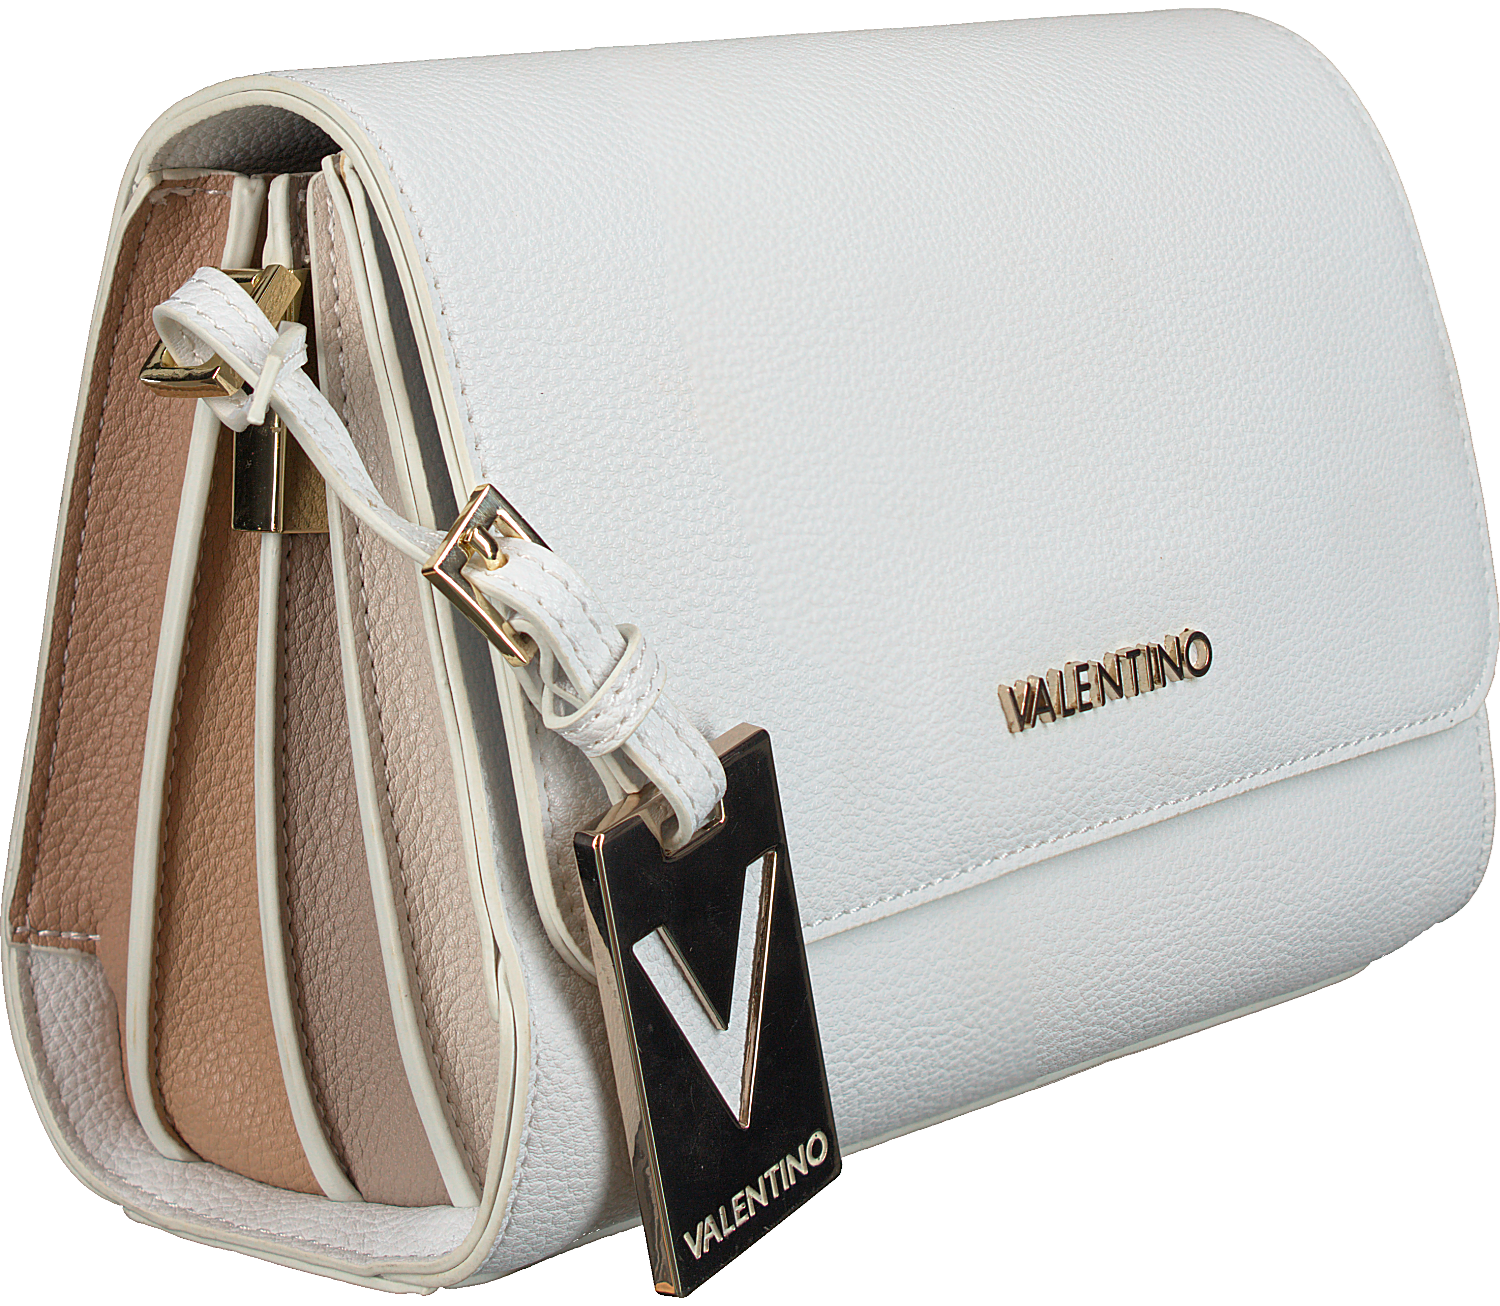 d4113b1dcab Witte VALENTINO HANDBAGS Schoudertas SUMMER MEMENTO SATCHEL. VALENTINO  HANDBAGS. Previous